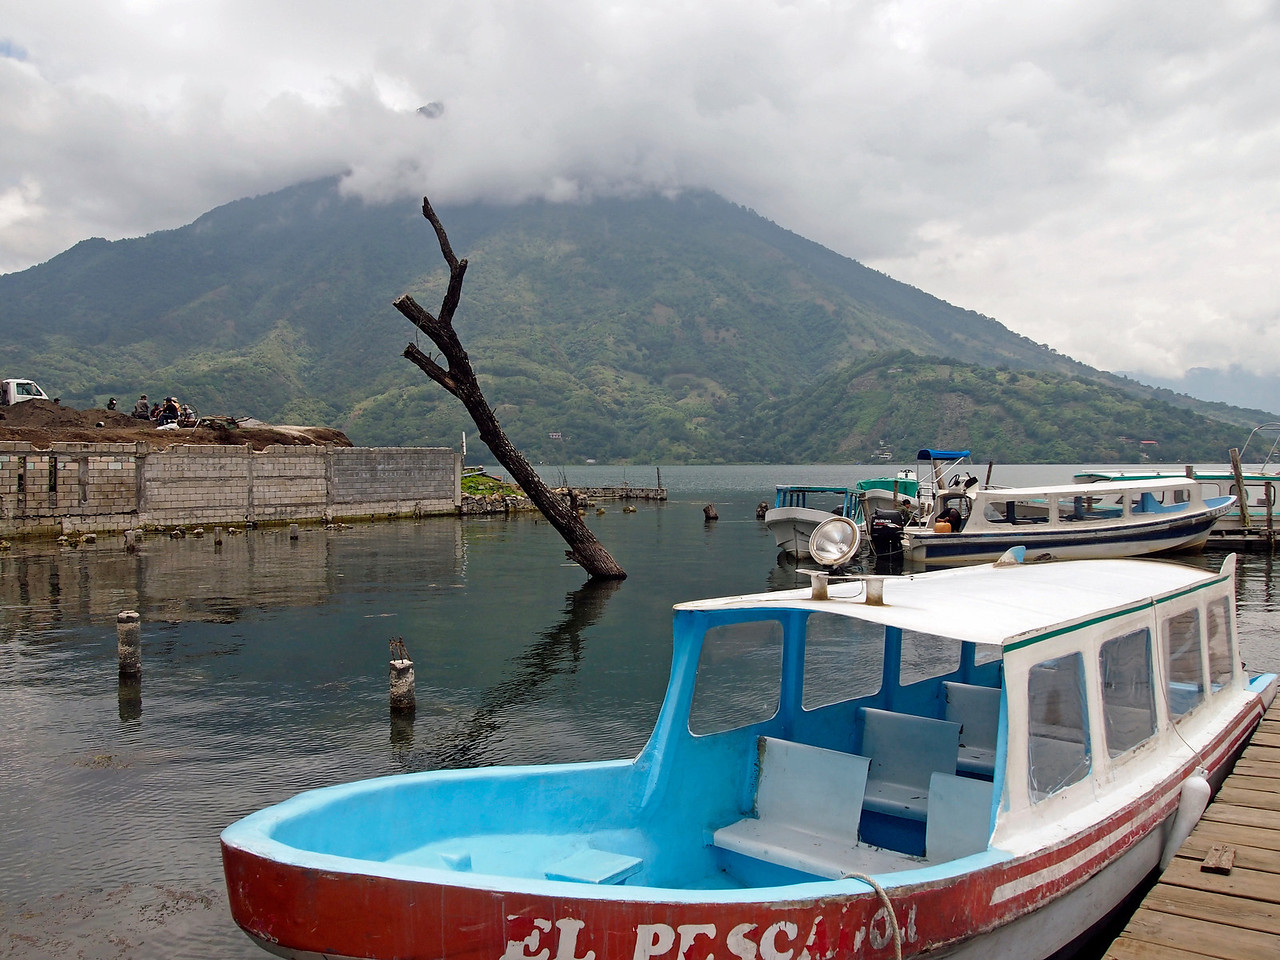 Boat at Santiago Atitlan - Lake level is rising drowning some trees